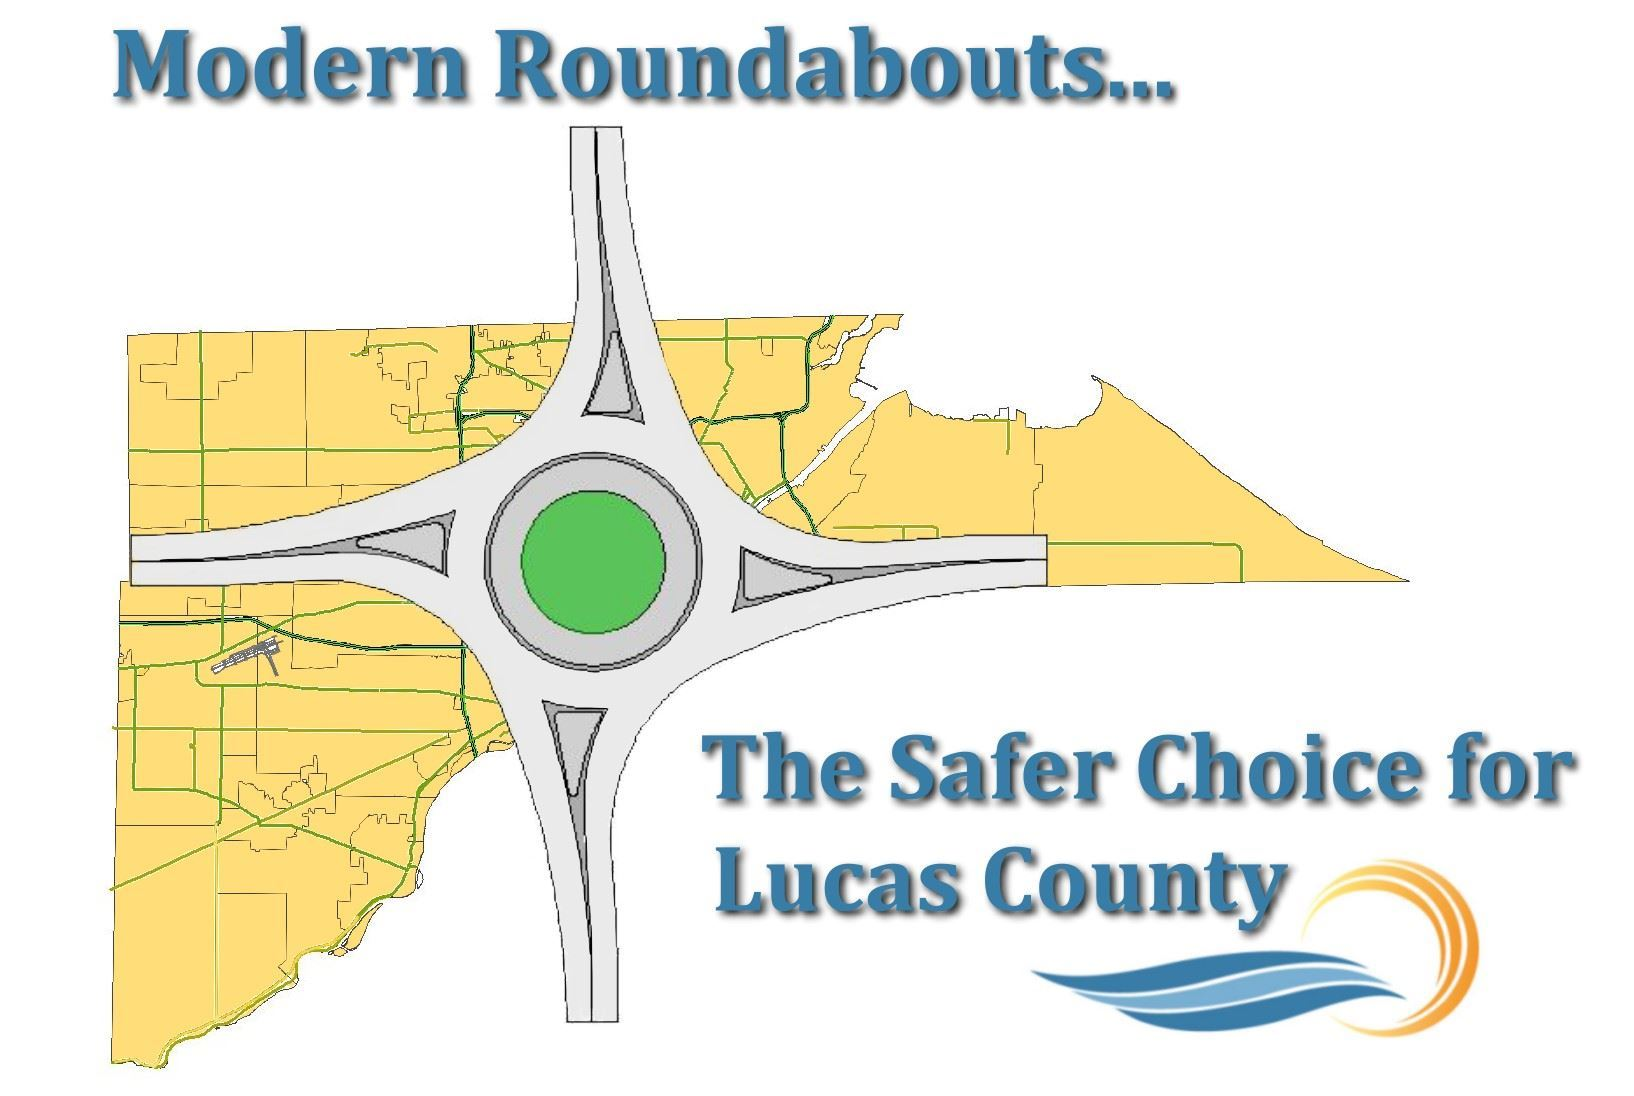 Modern Roundabouts-The Safer Choice for Lucas County